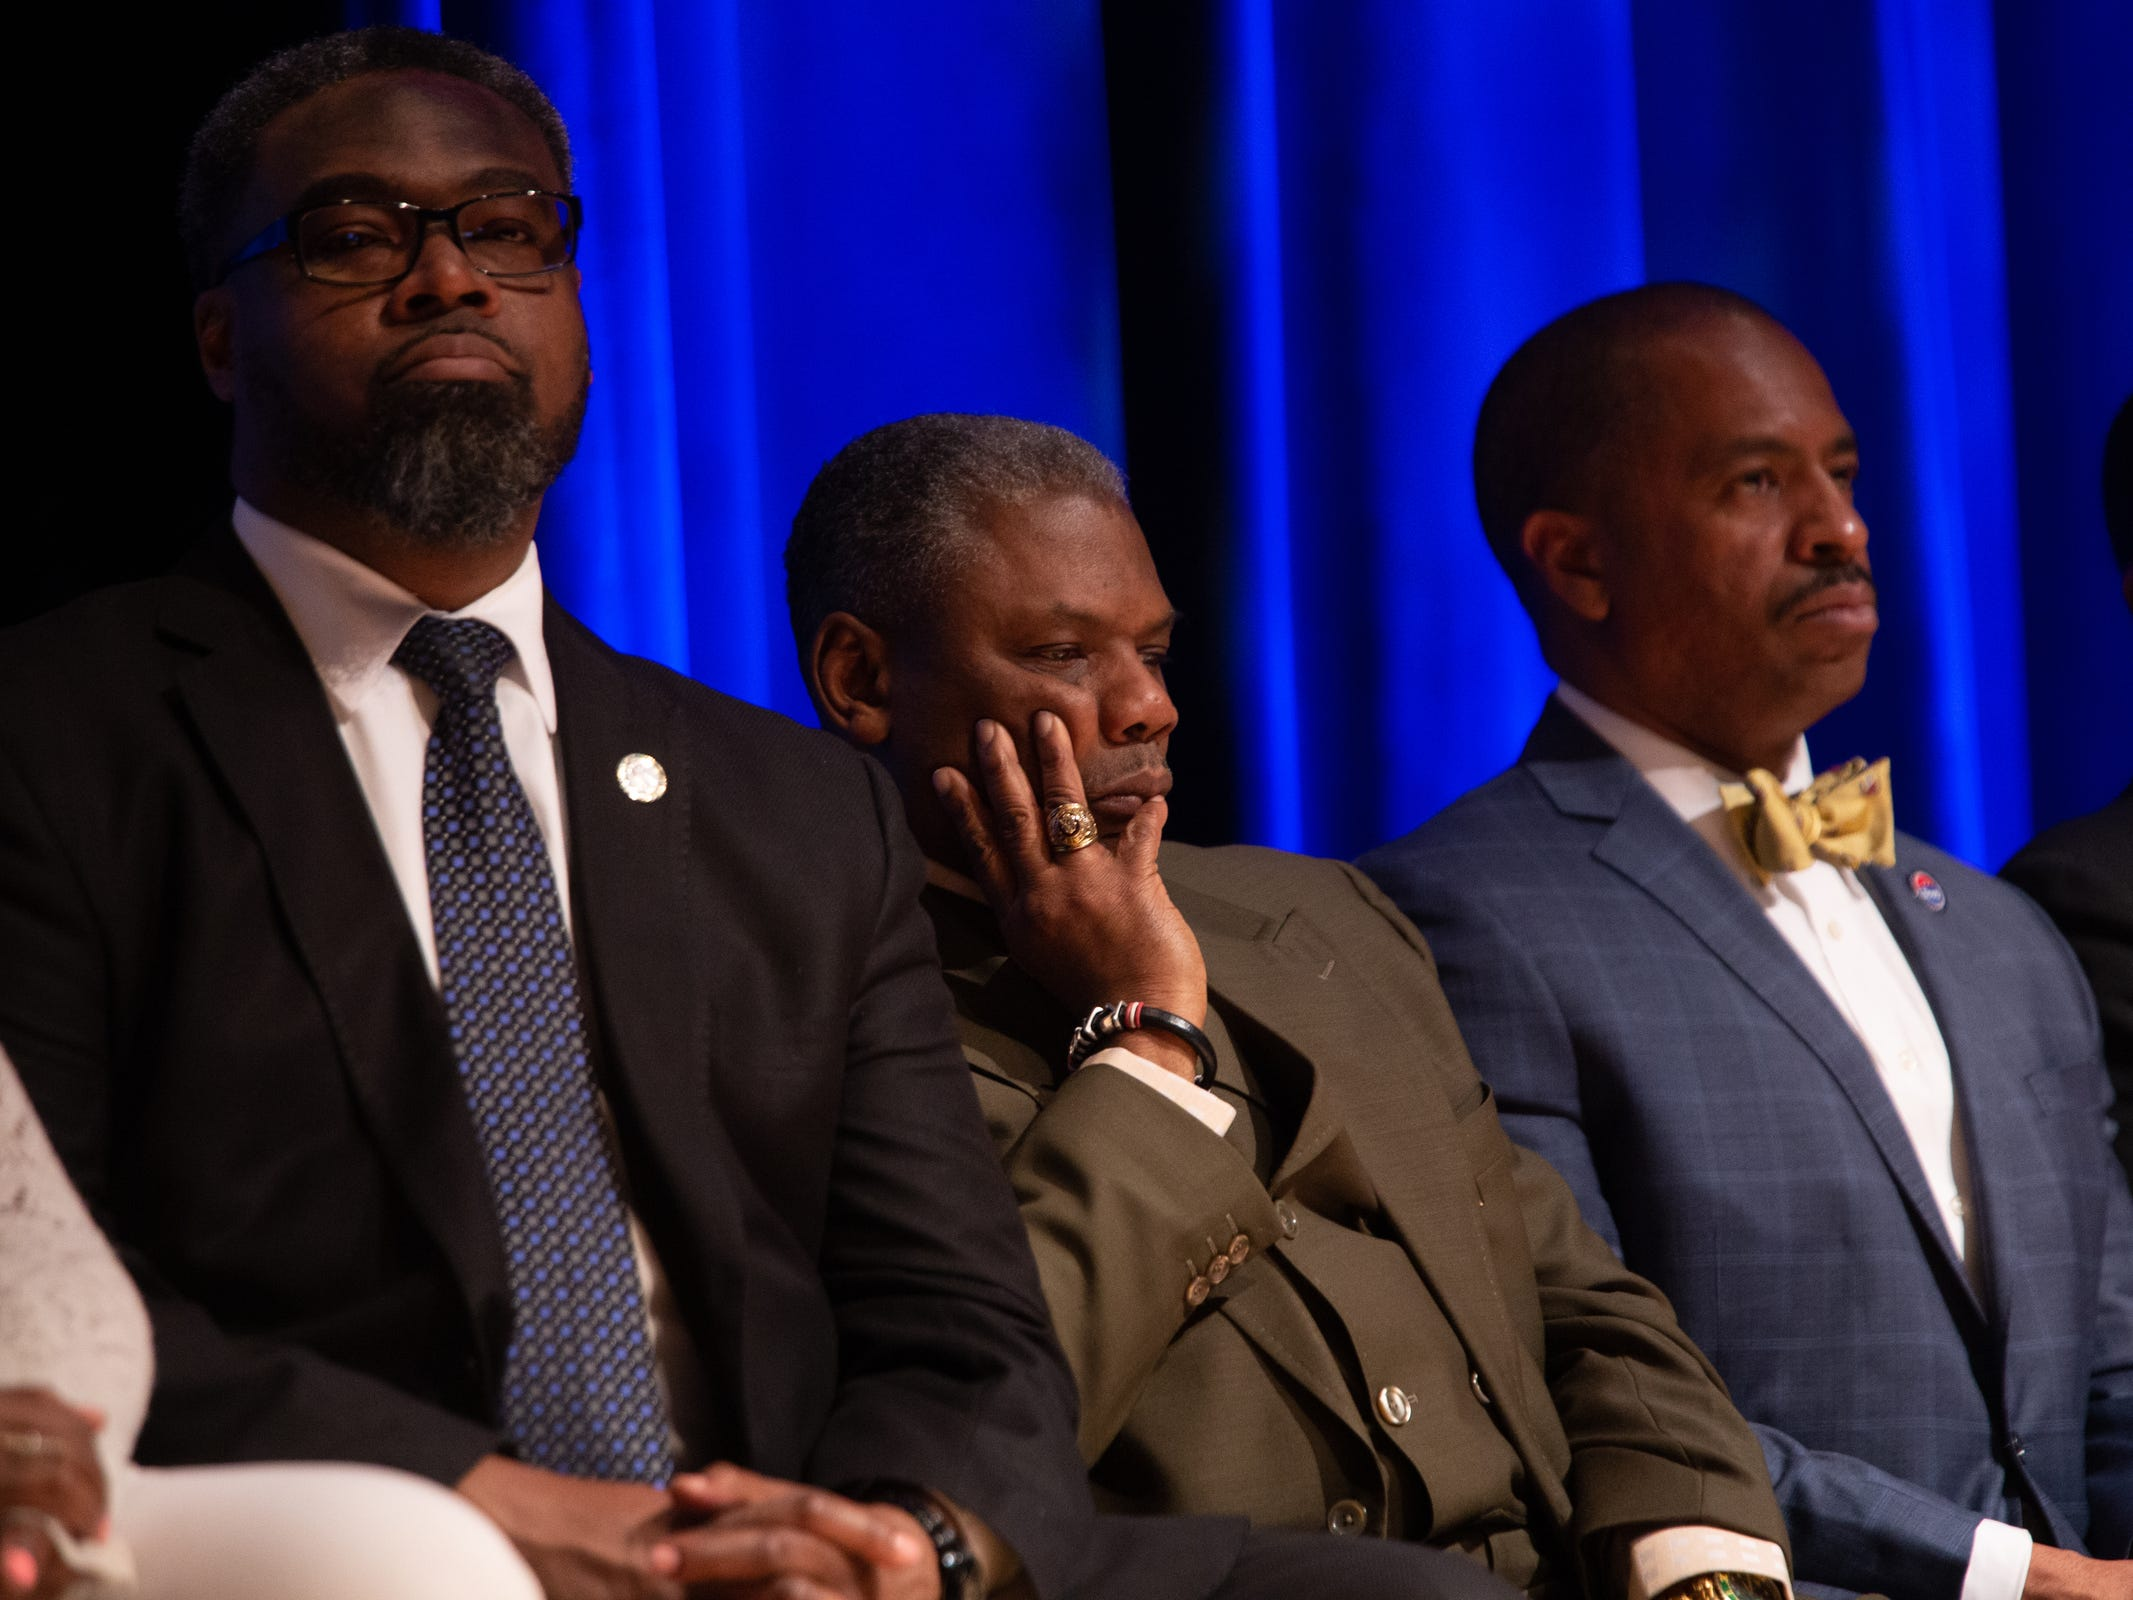 Detroit City Councilman listen as Mayor Mike Duggan speaks during the 2019 State of the City Address on Tuesday, March 5, 2019 at East English Village Preparatory Academy in Detroit.